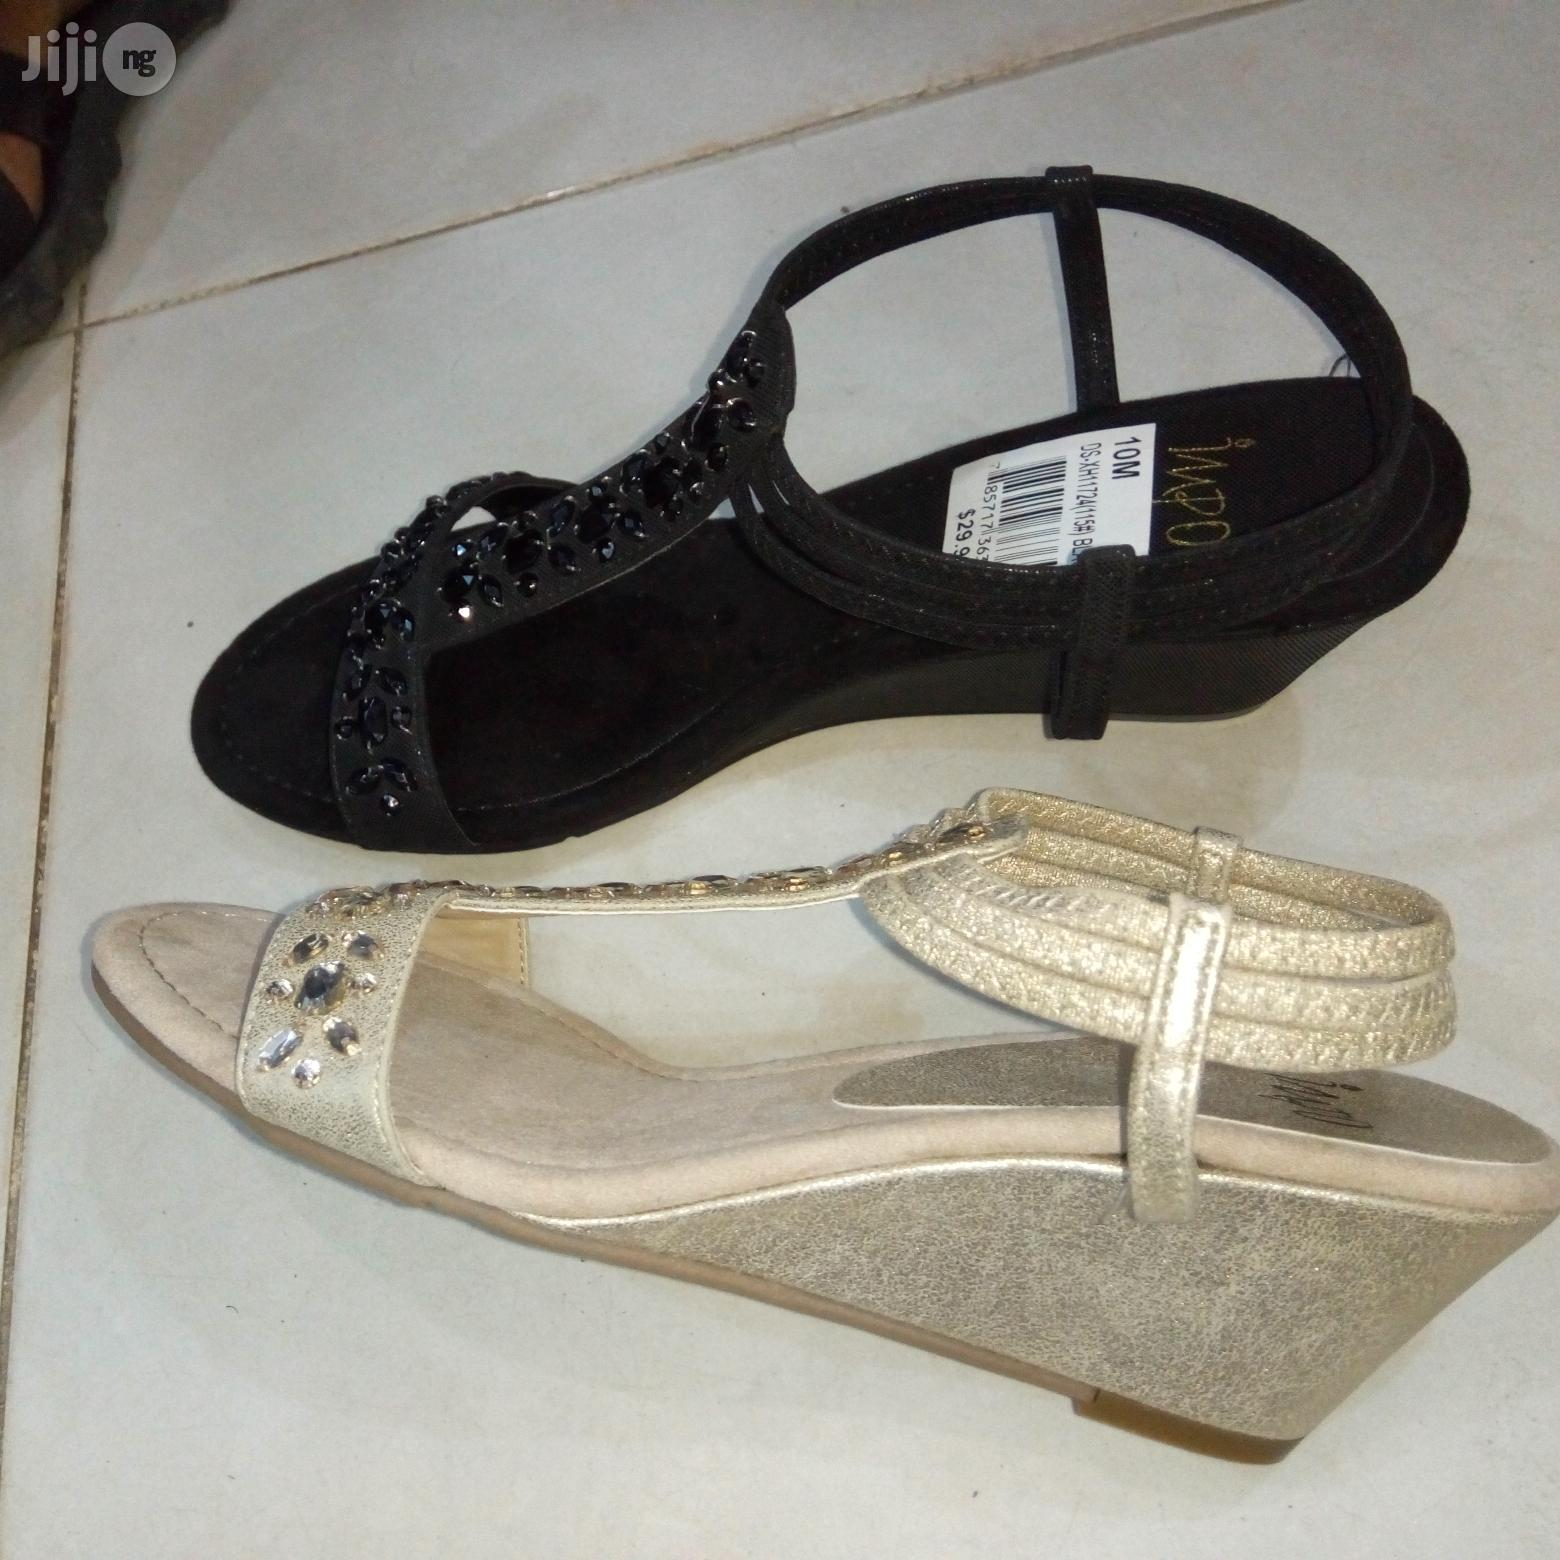 IMPO Sandals (New Arrival)